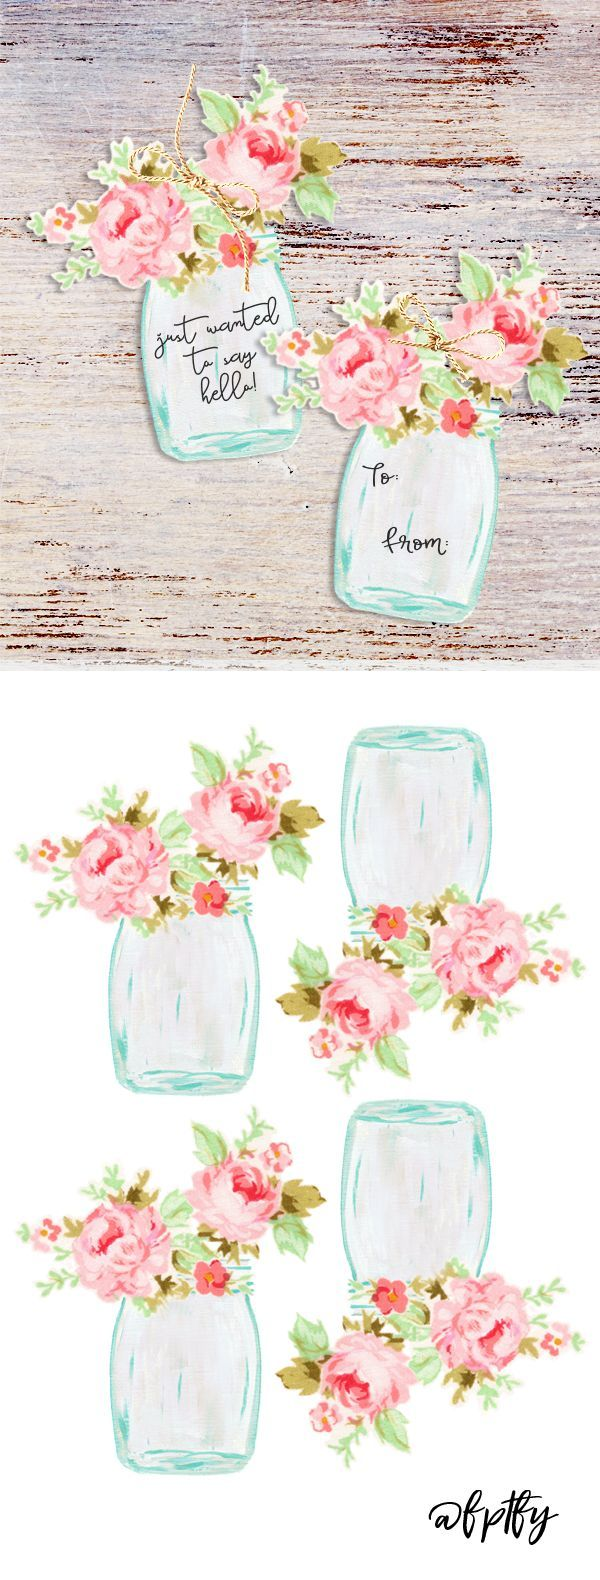 Free Mason Jar Floral Tags: Hey Ladies! Hope you are all having a wonderful week! Today is my little one's 7th Birthday and we are beyond blessed to be celebrating everything the Lord has given us through her! She has been such a joy!!! I can't believe 7 years just flew by, just like that! Here …